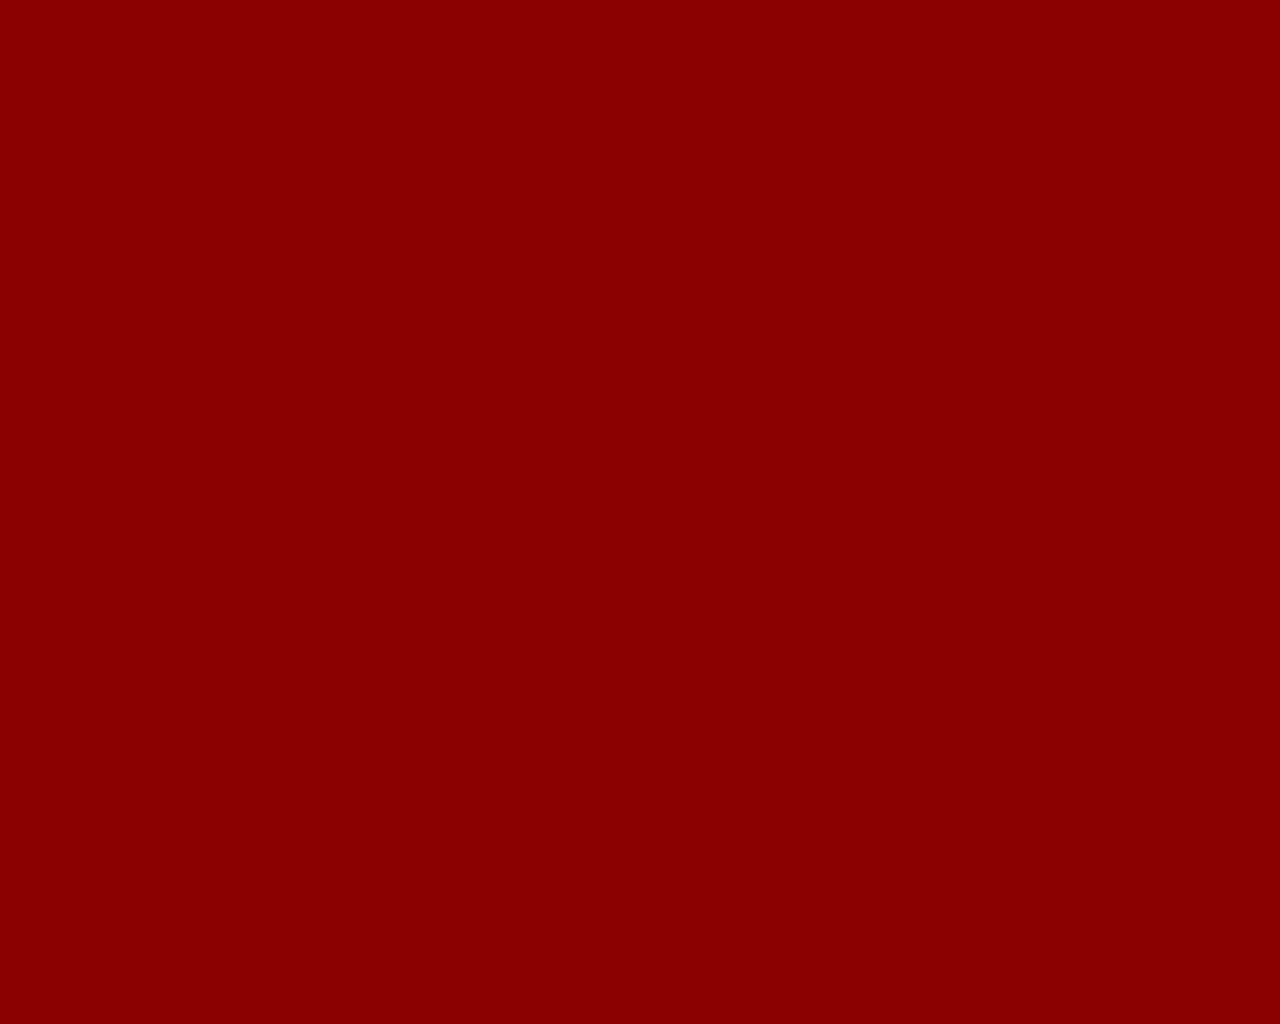 Dark Red Colour Wallpaper Red Color Wallpapers -...